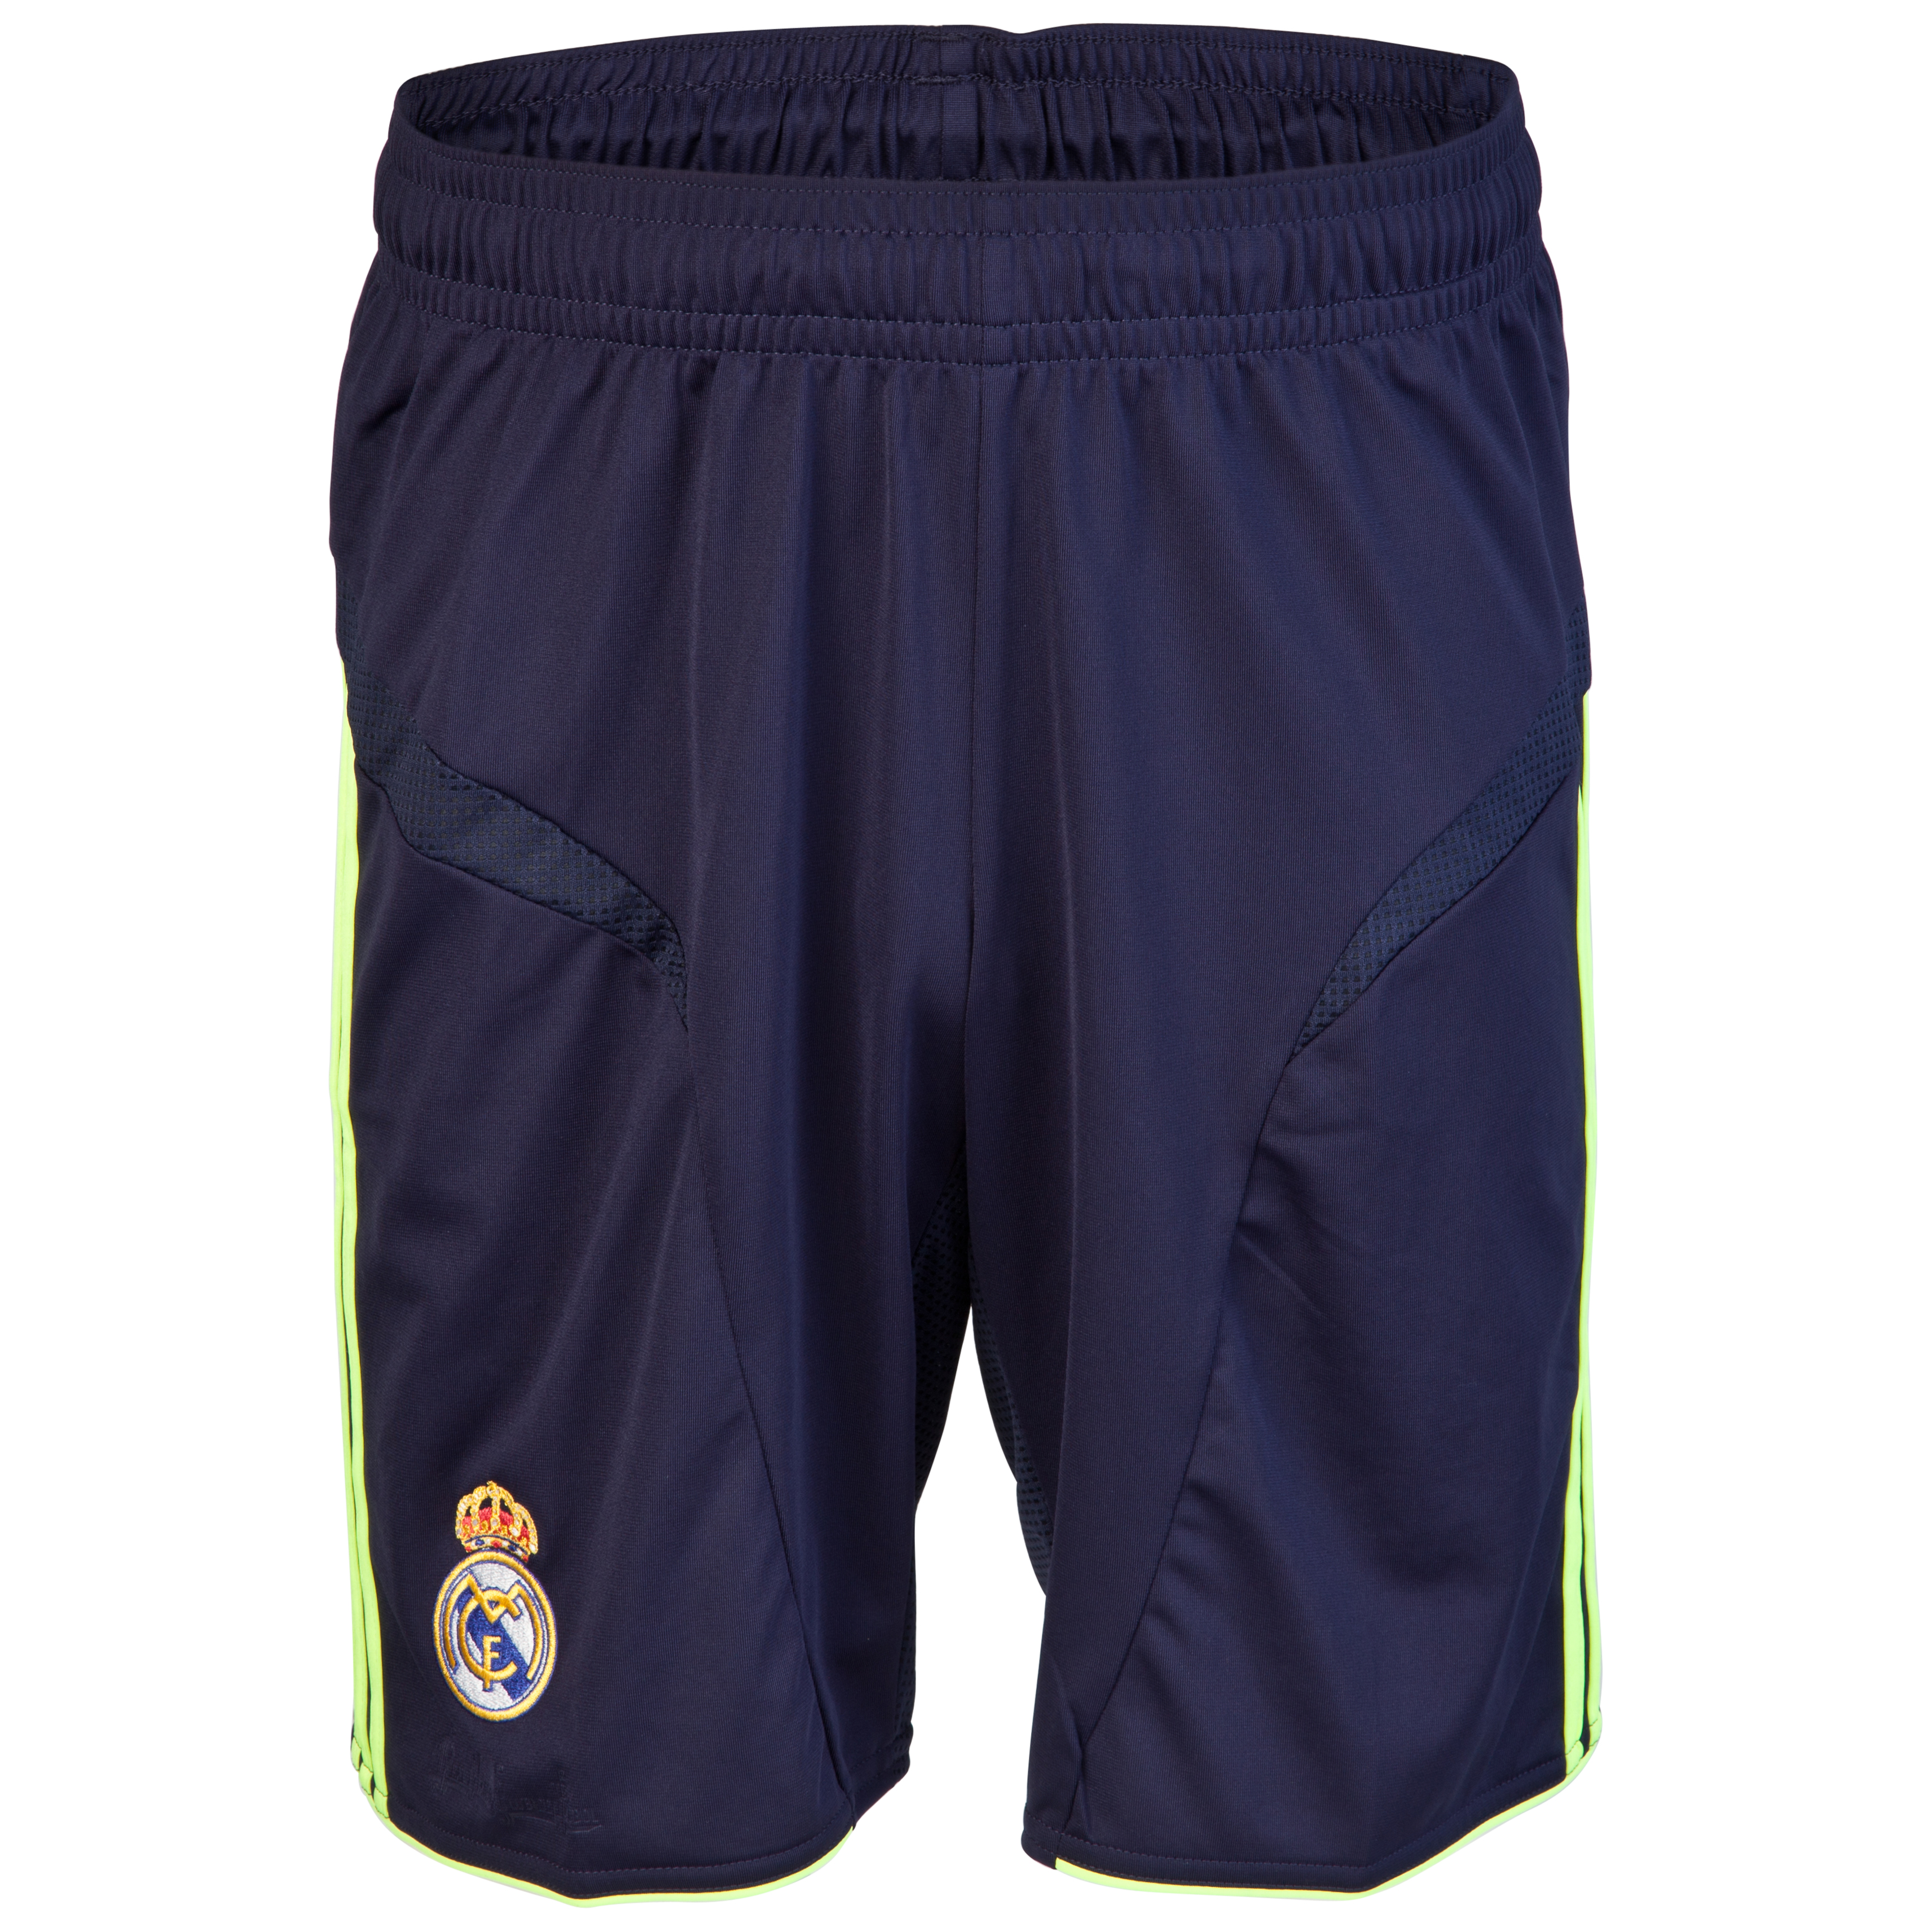 Pantaln corto visitante Real Madrid 2012/13